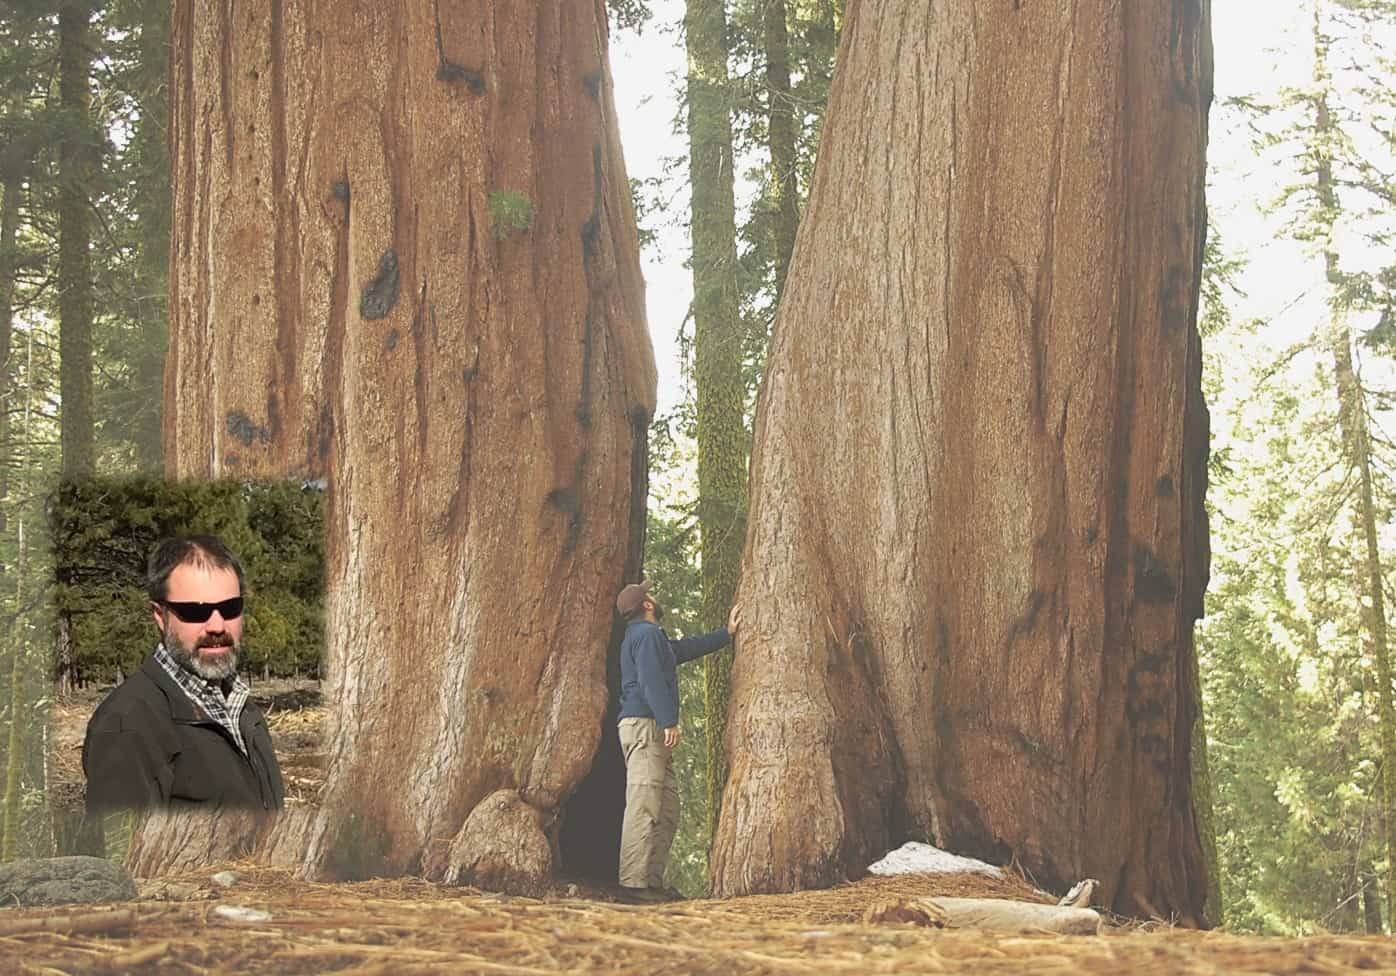 A headshot of Ed Keith imposed on a landscape photo of Ed admiring giant sequoia trees.